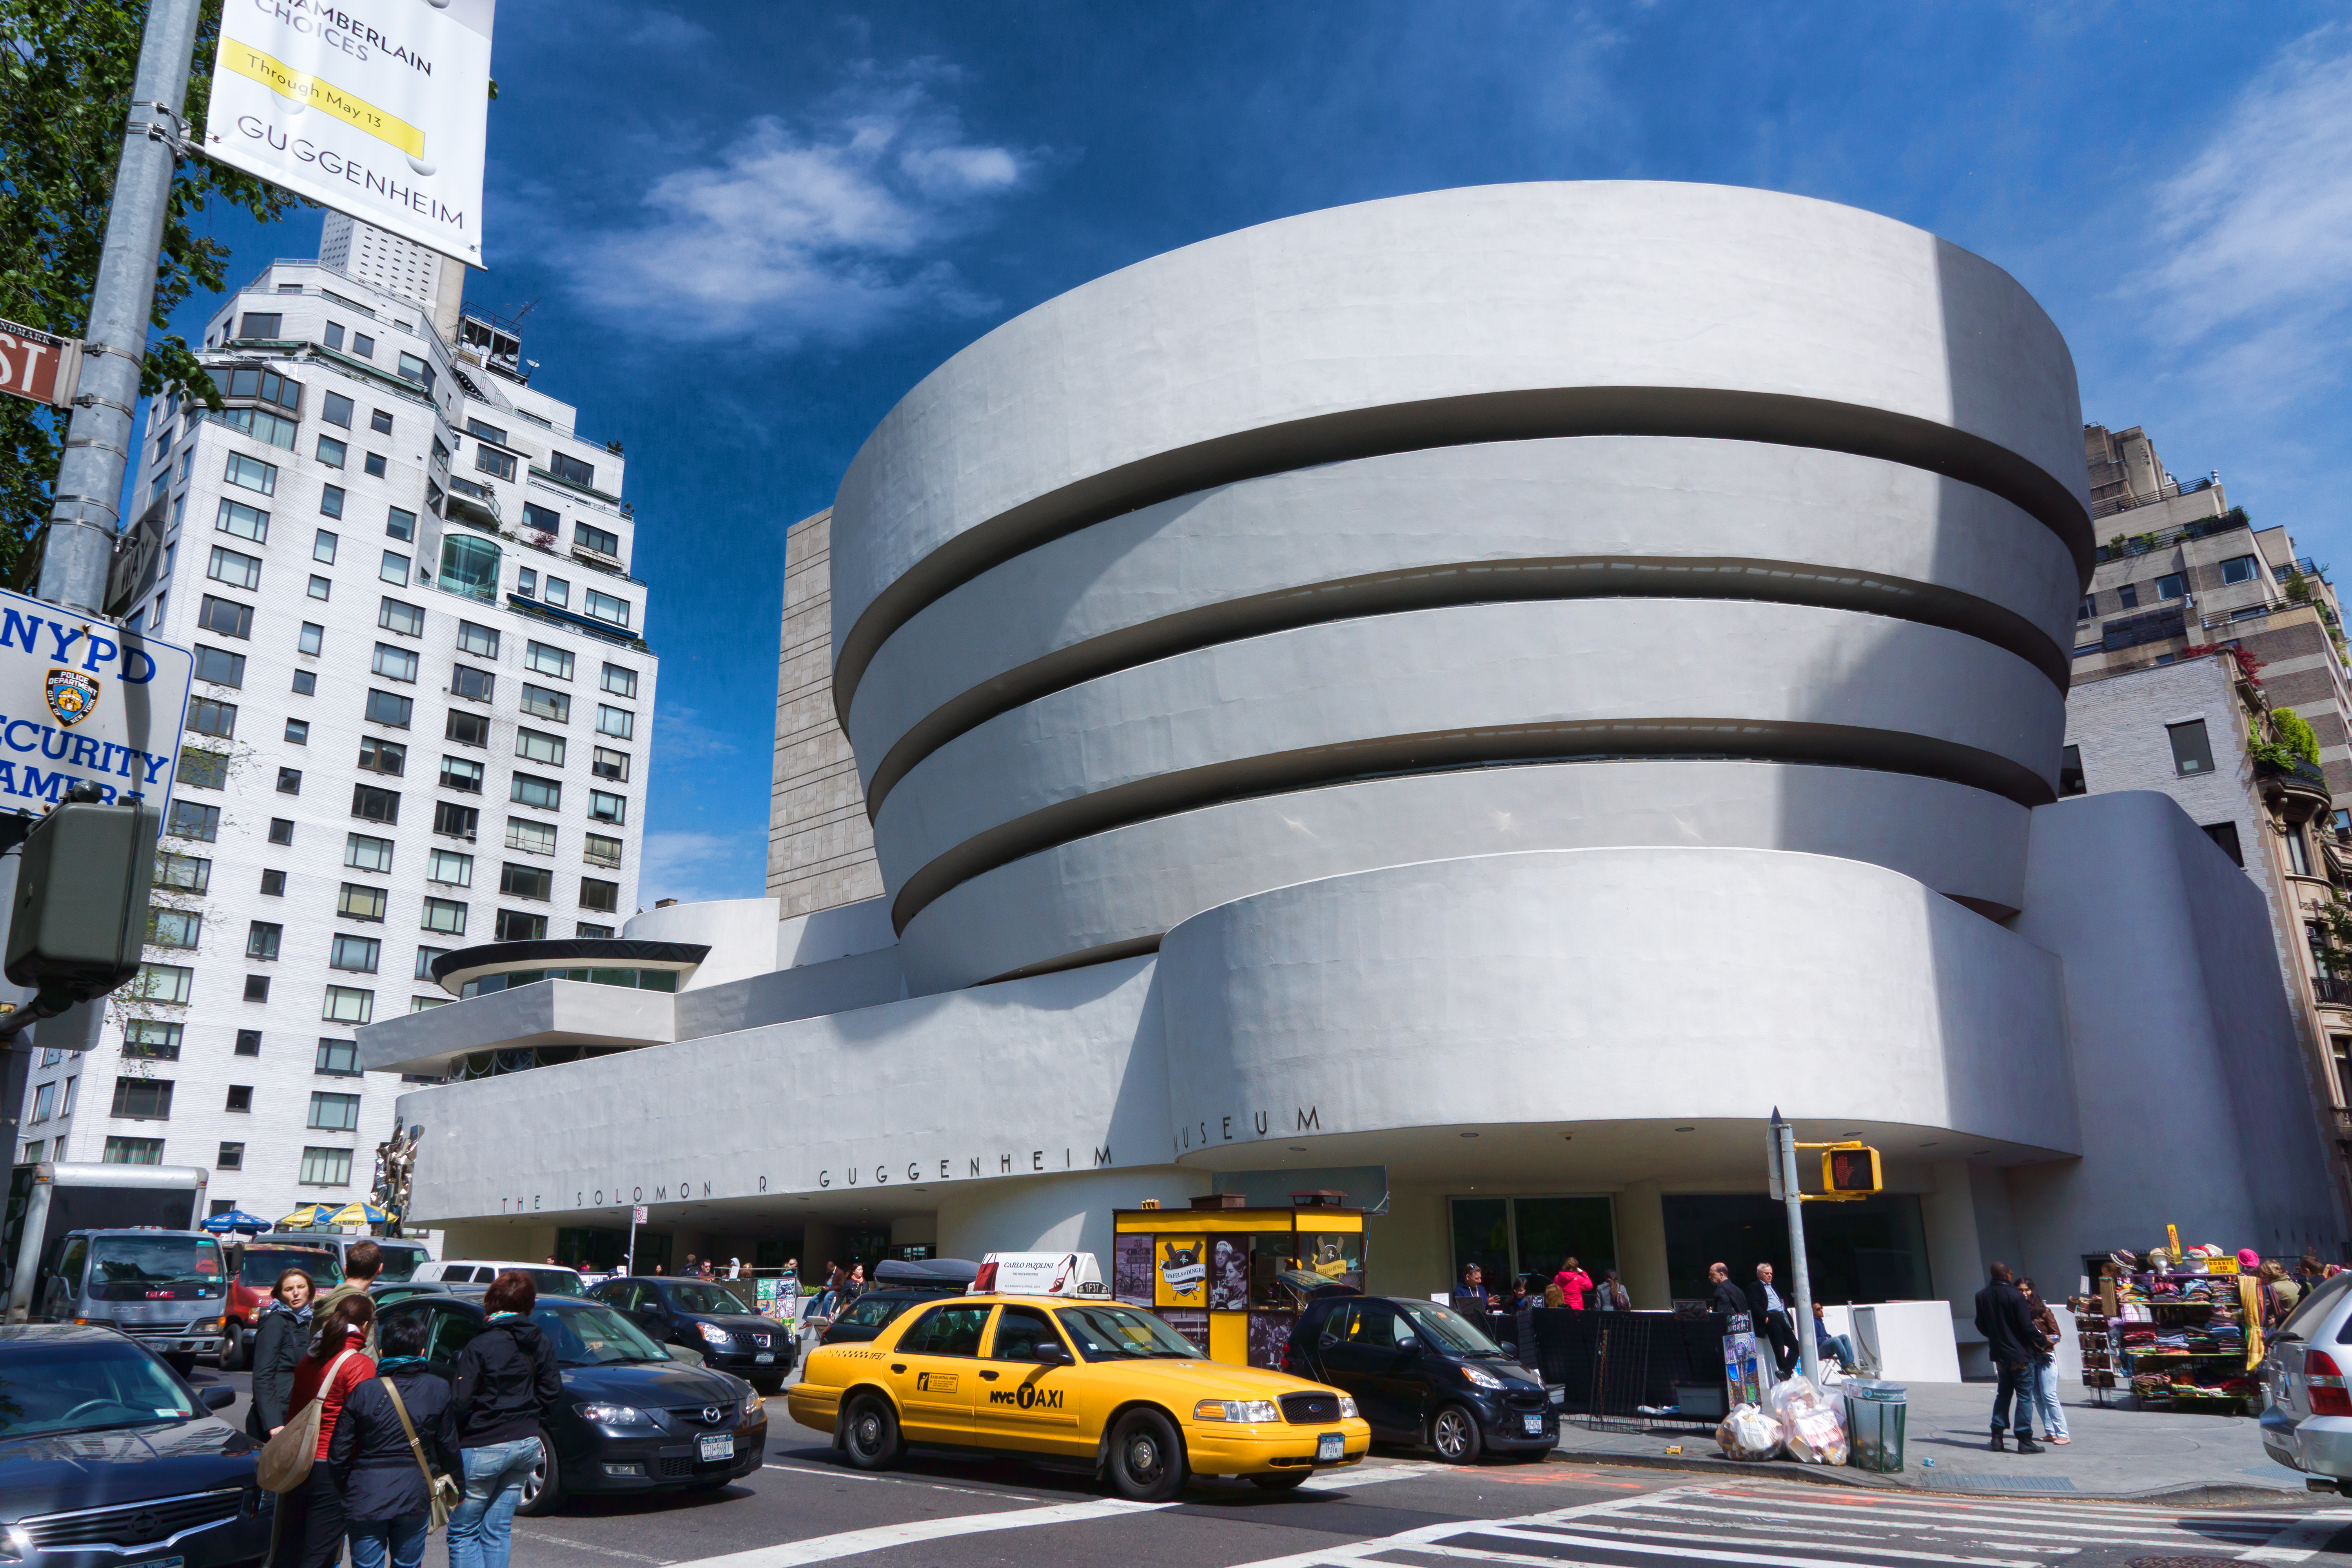 Guggenheim New York: A Must-See in NYC